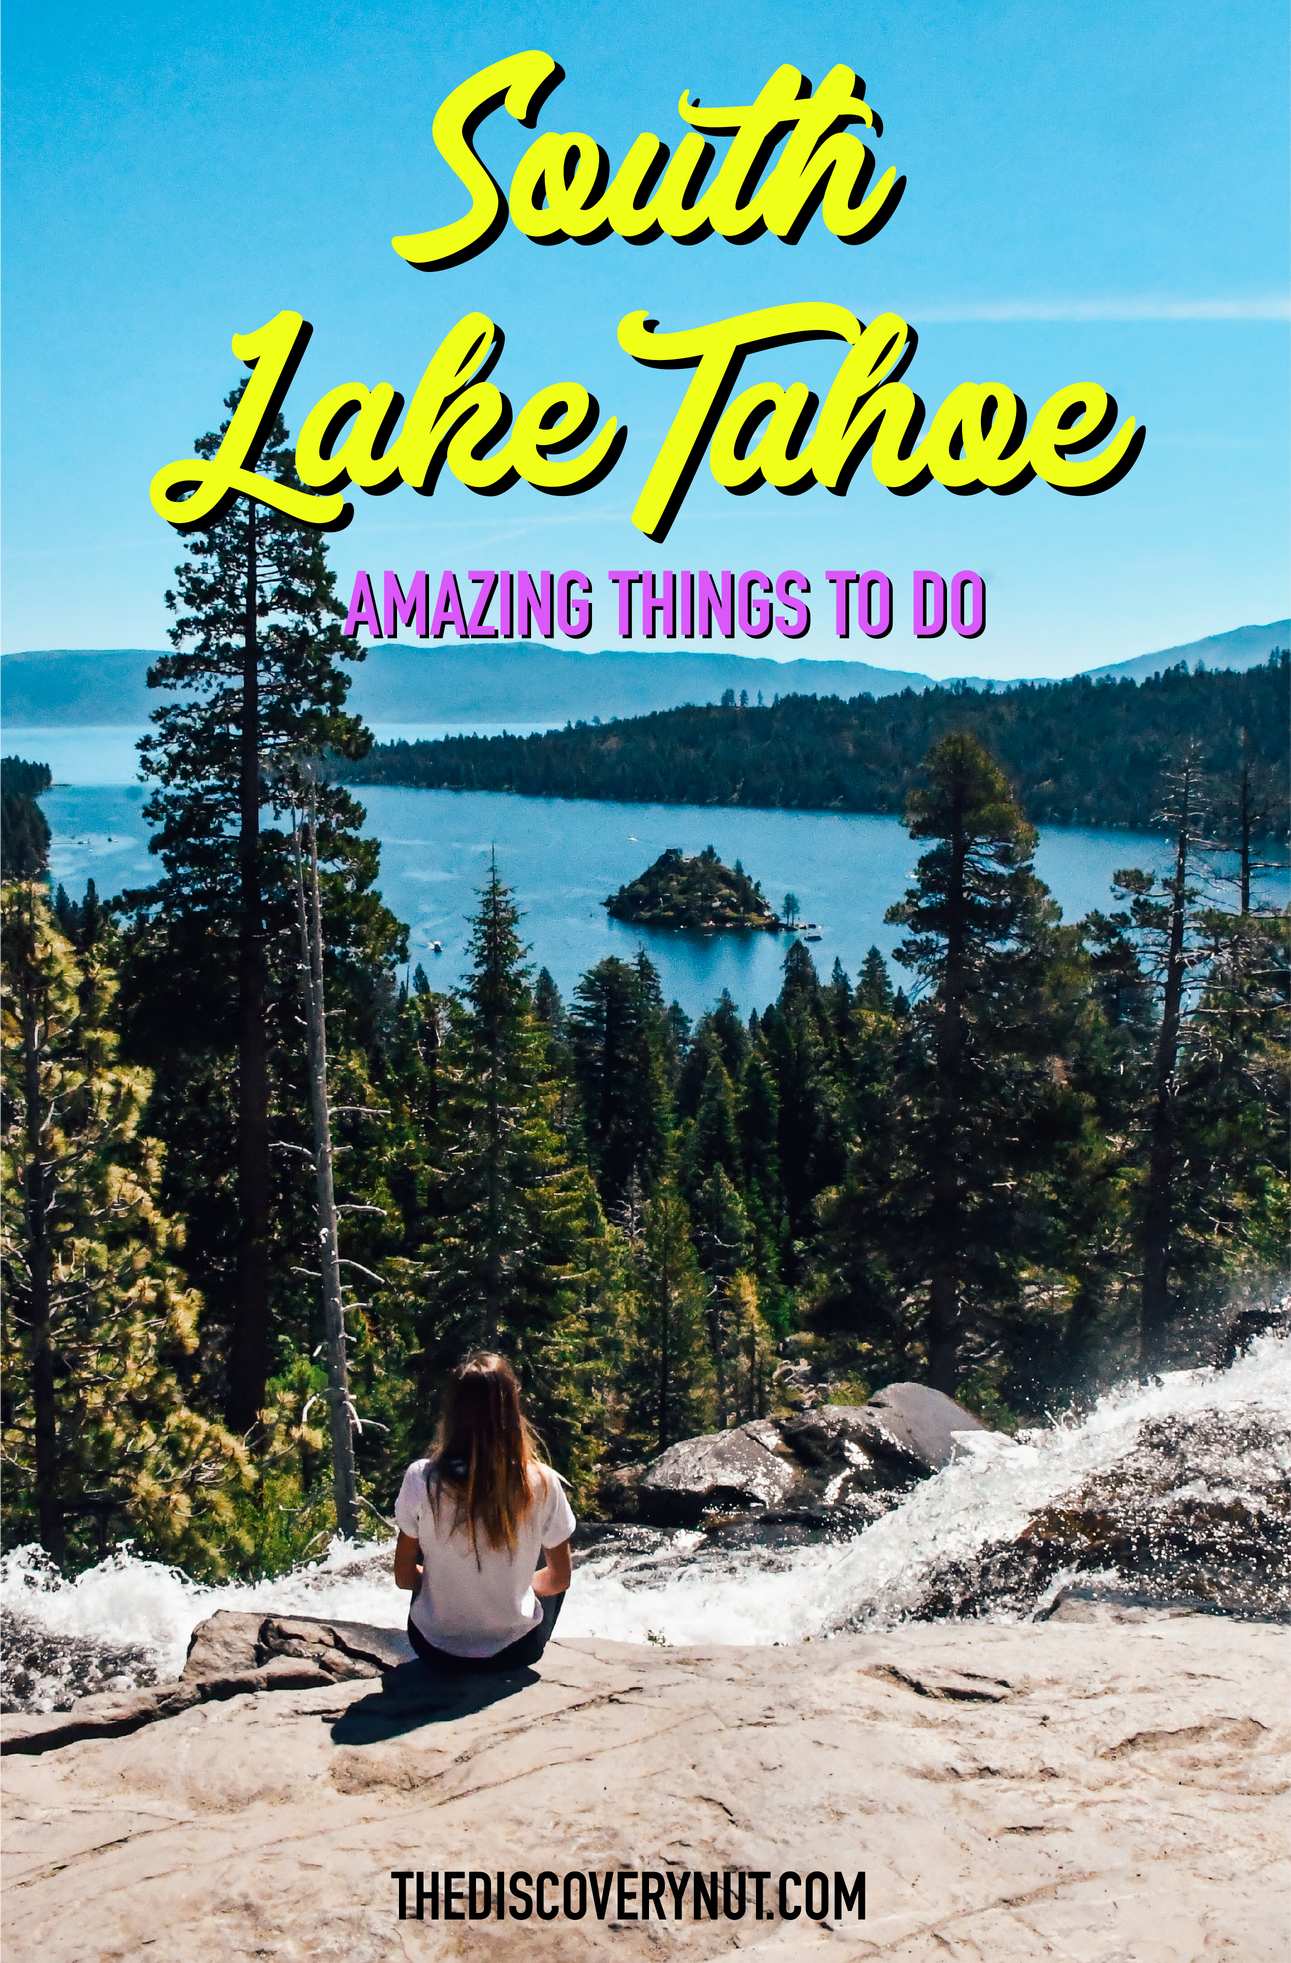 South Lake Tahoe in California is one of the most beautiful places to visit in the United States. In my blog post I cover the best things to do in South Lake Tahoe, as well as the best hiking and camping spots and a whole lot more! #southlaketahoe #usaroadtrip #californiatravel #laketahoe #northamericatravel